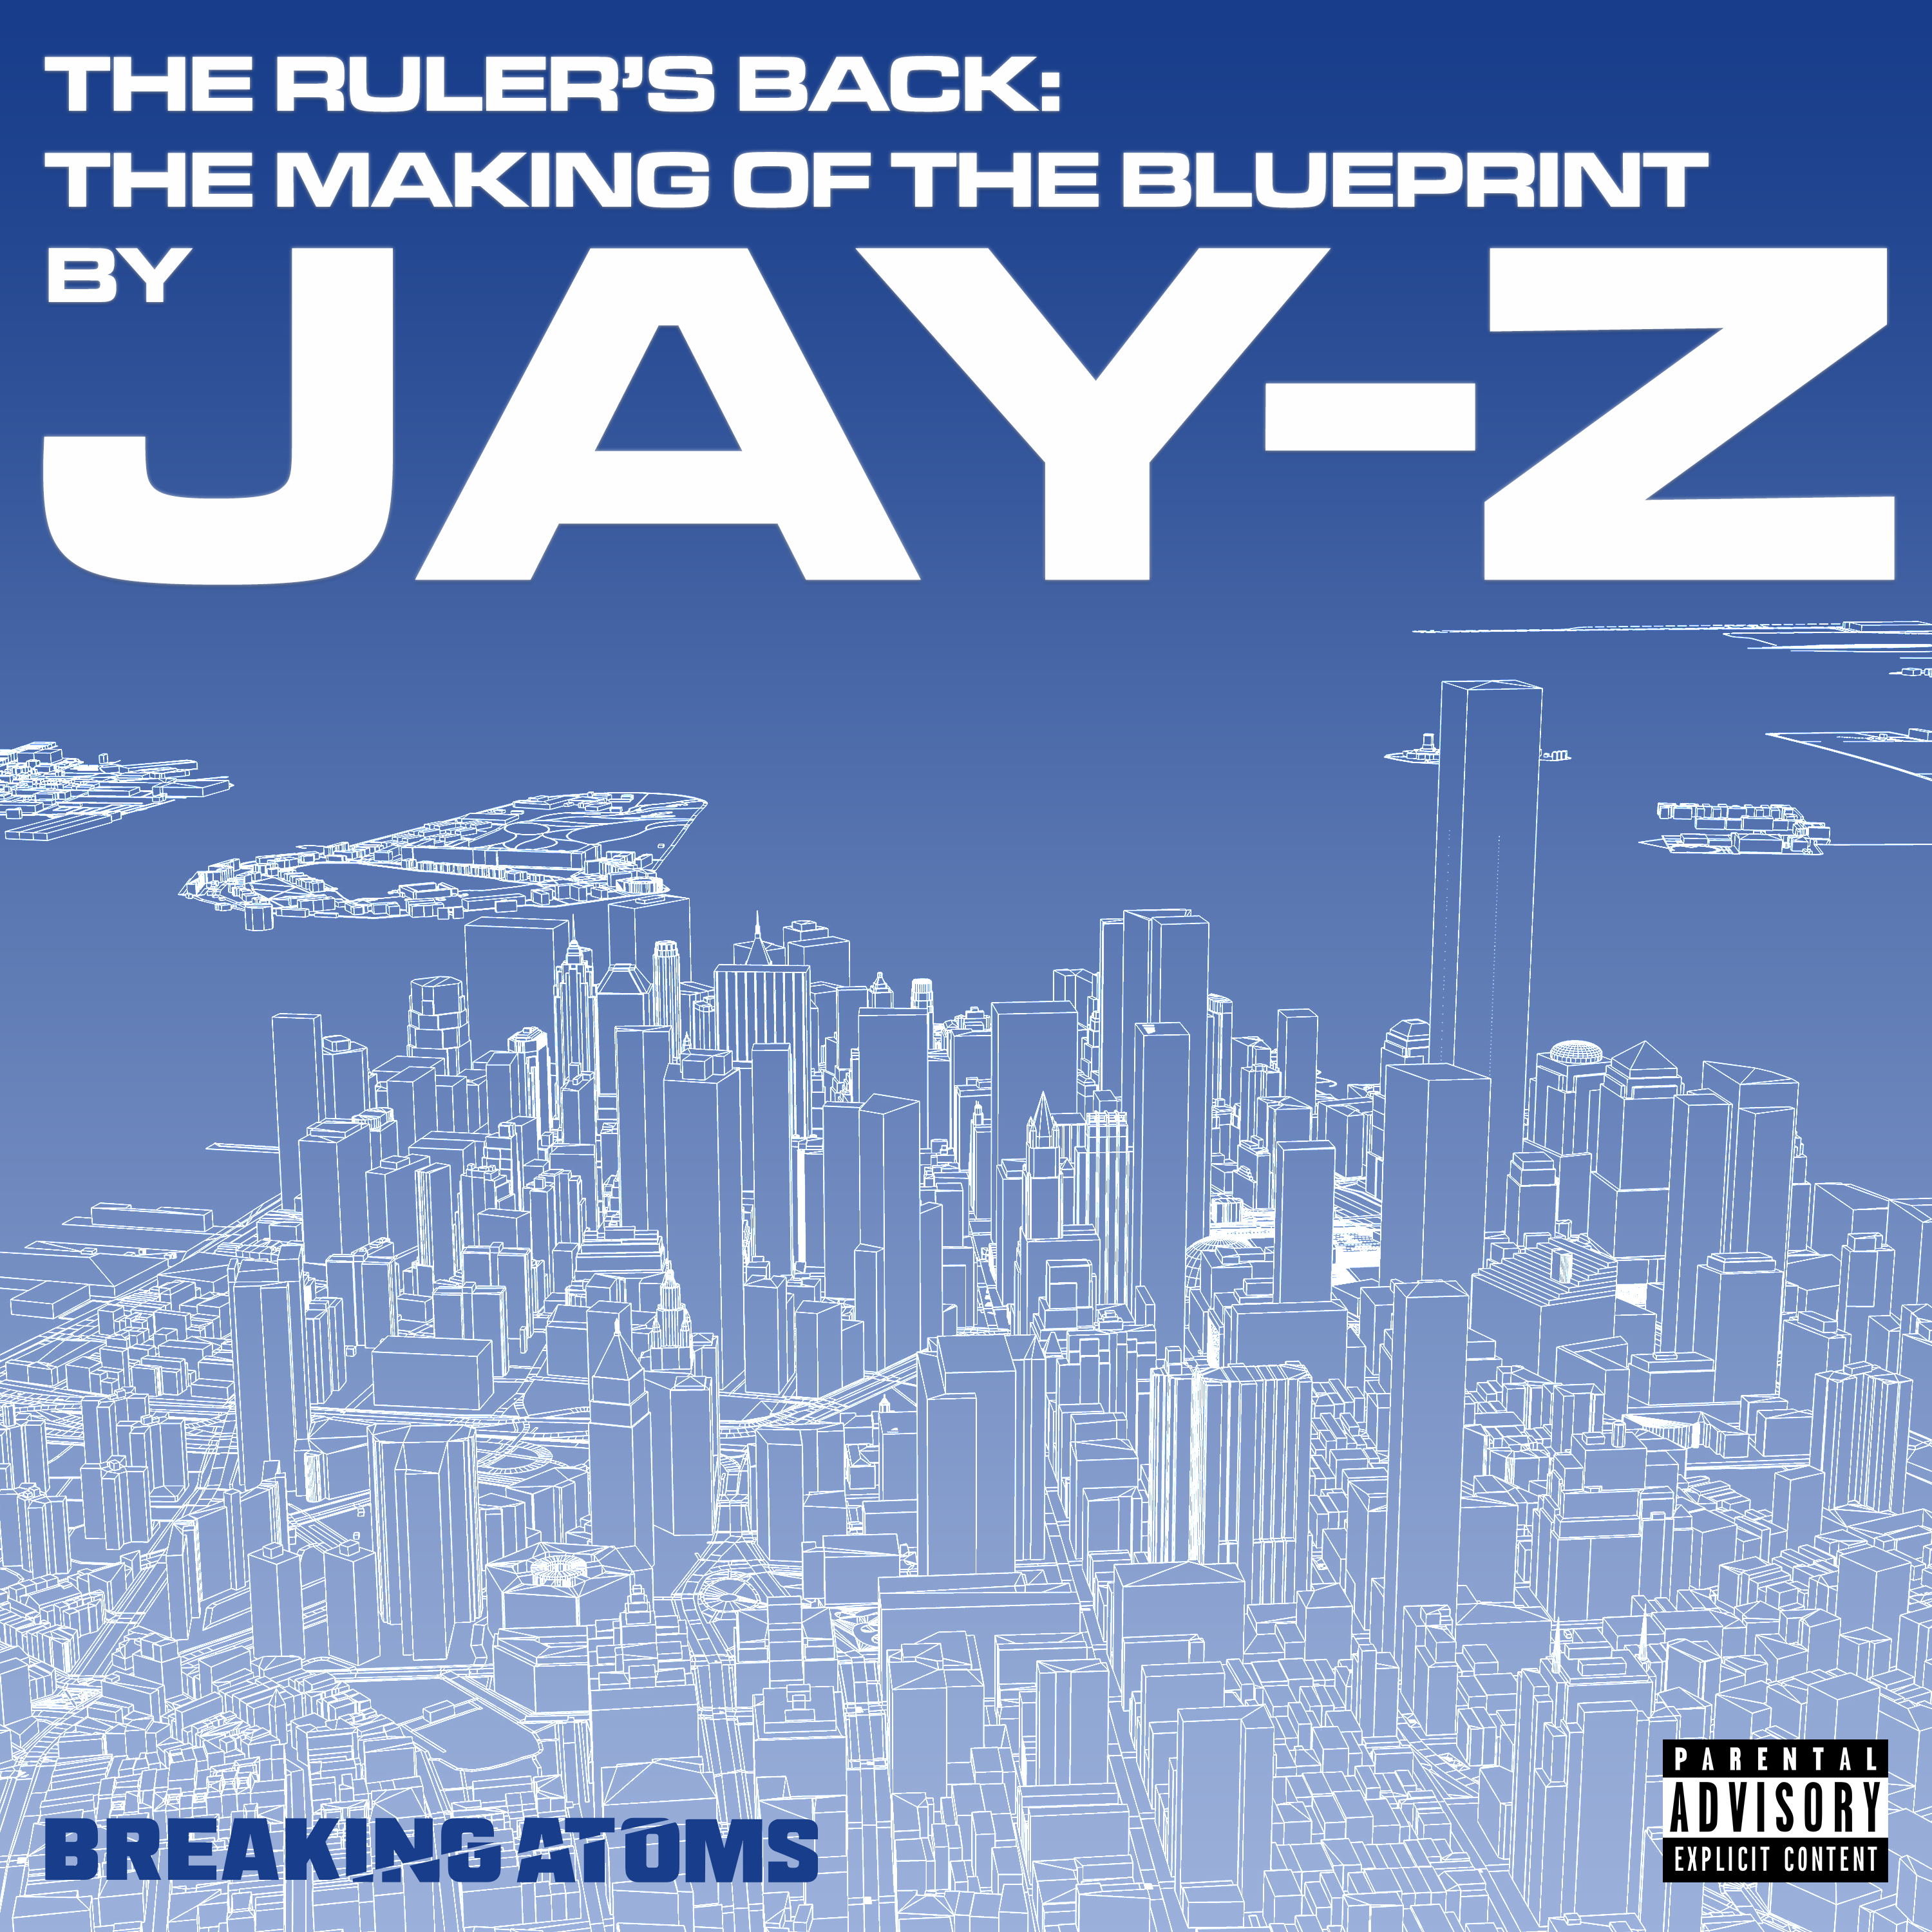 Ep. 3: Never Change | The Ruler's Back: The Making of The Blueprint by Jay-Z